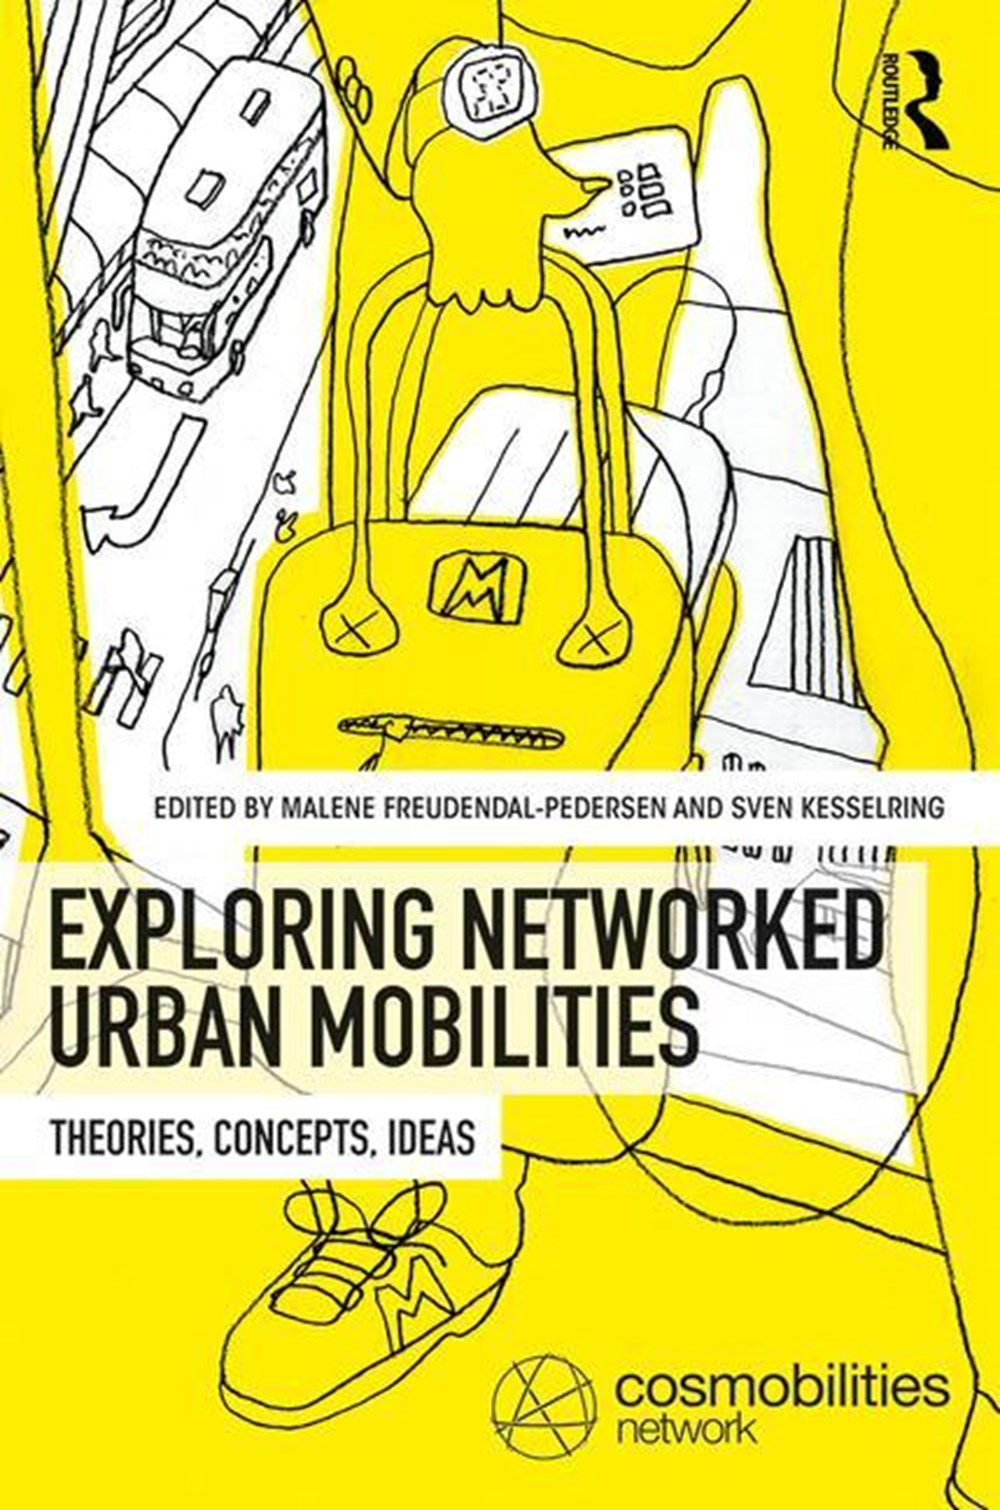 Exploring Networked Urban Mobilities Theories, Concepts, Ideas